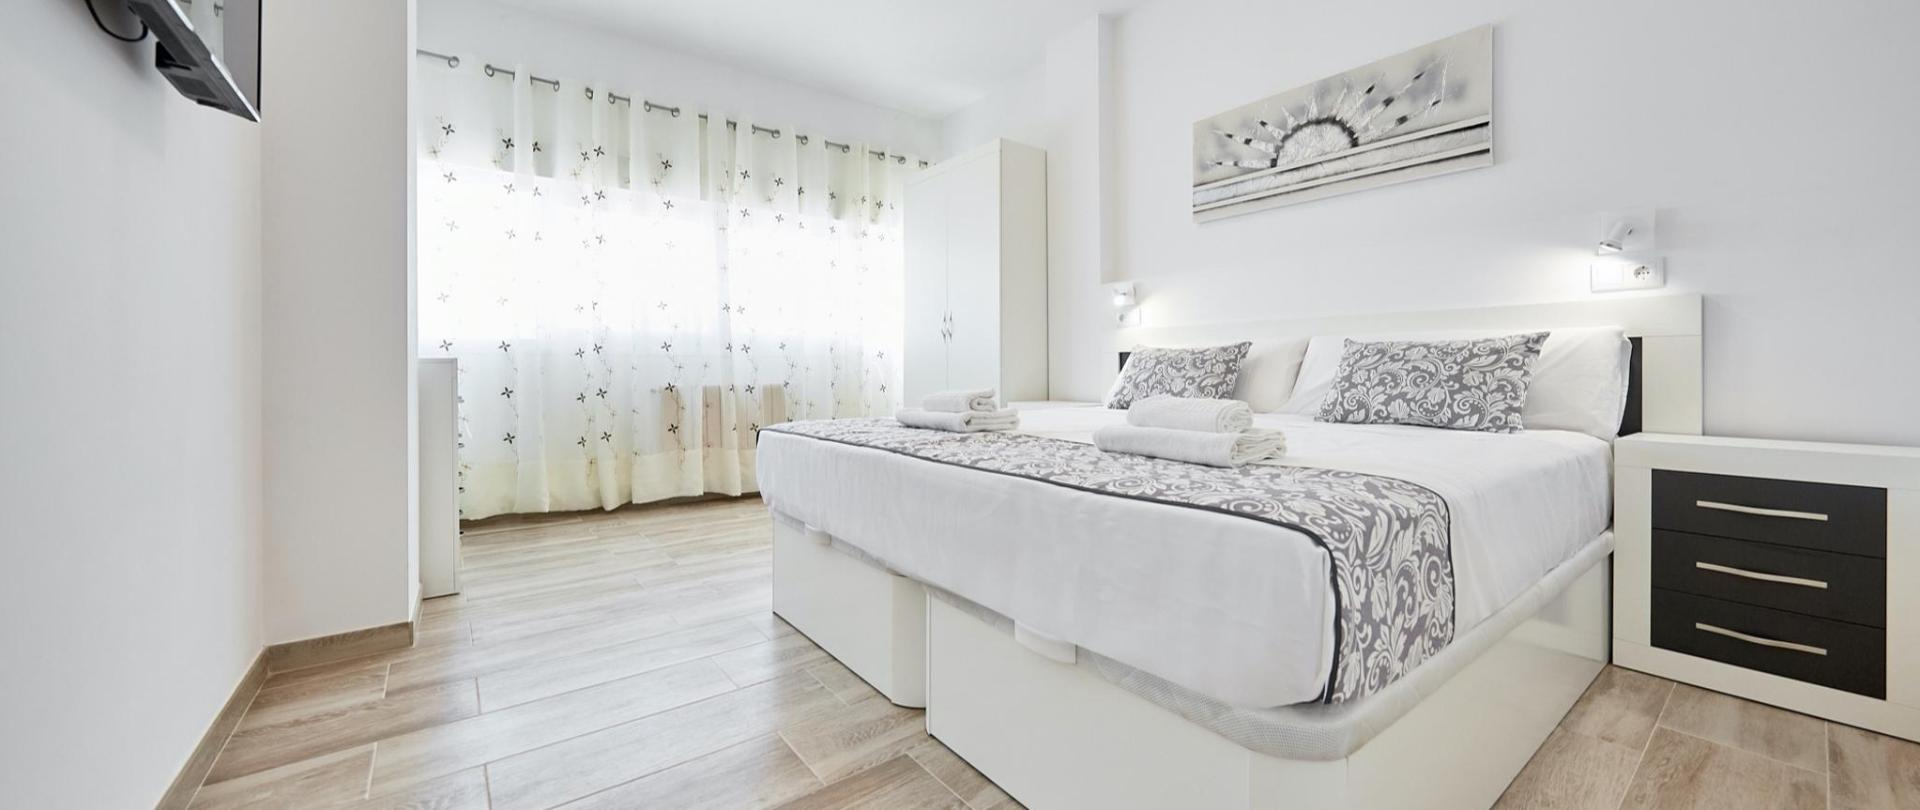 Sonrisa Apartments - Panoramic Penthouse with Sea View8.jpg